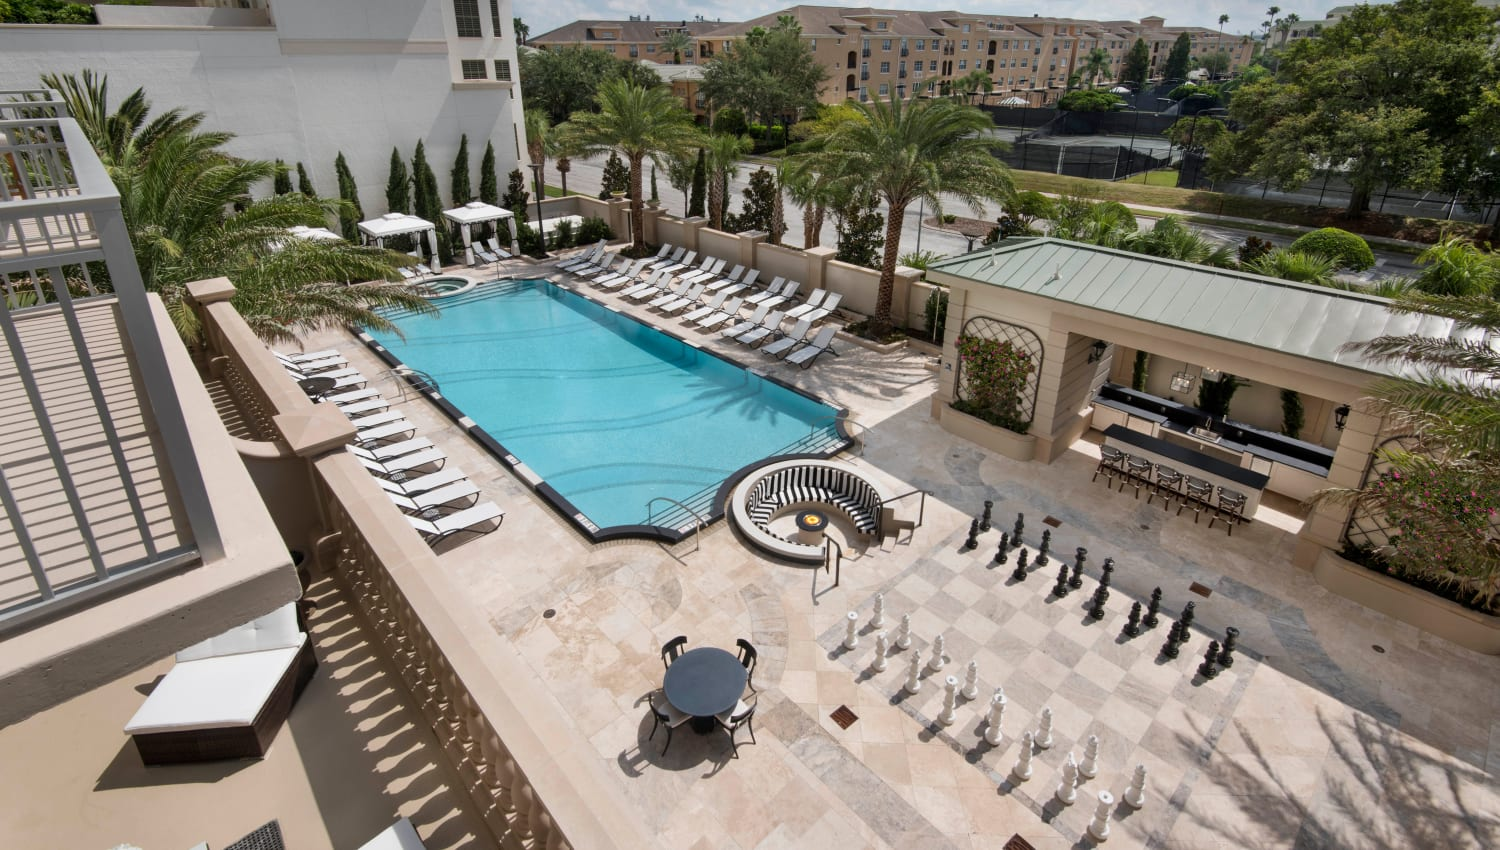 View of the swimming pool area and life-size chess board from an upper-floor home at Olympus Harbour Island in Tampa, Florida